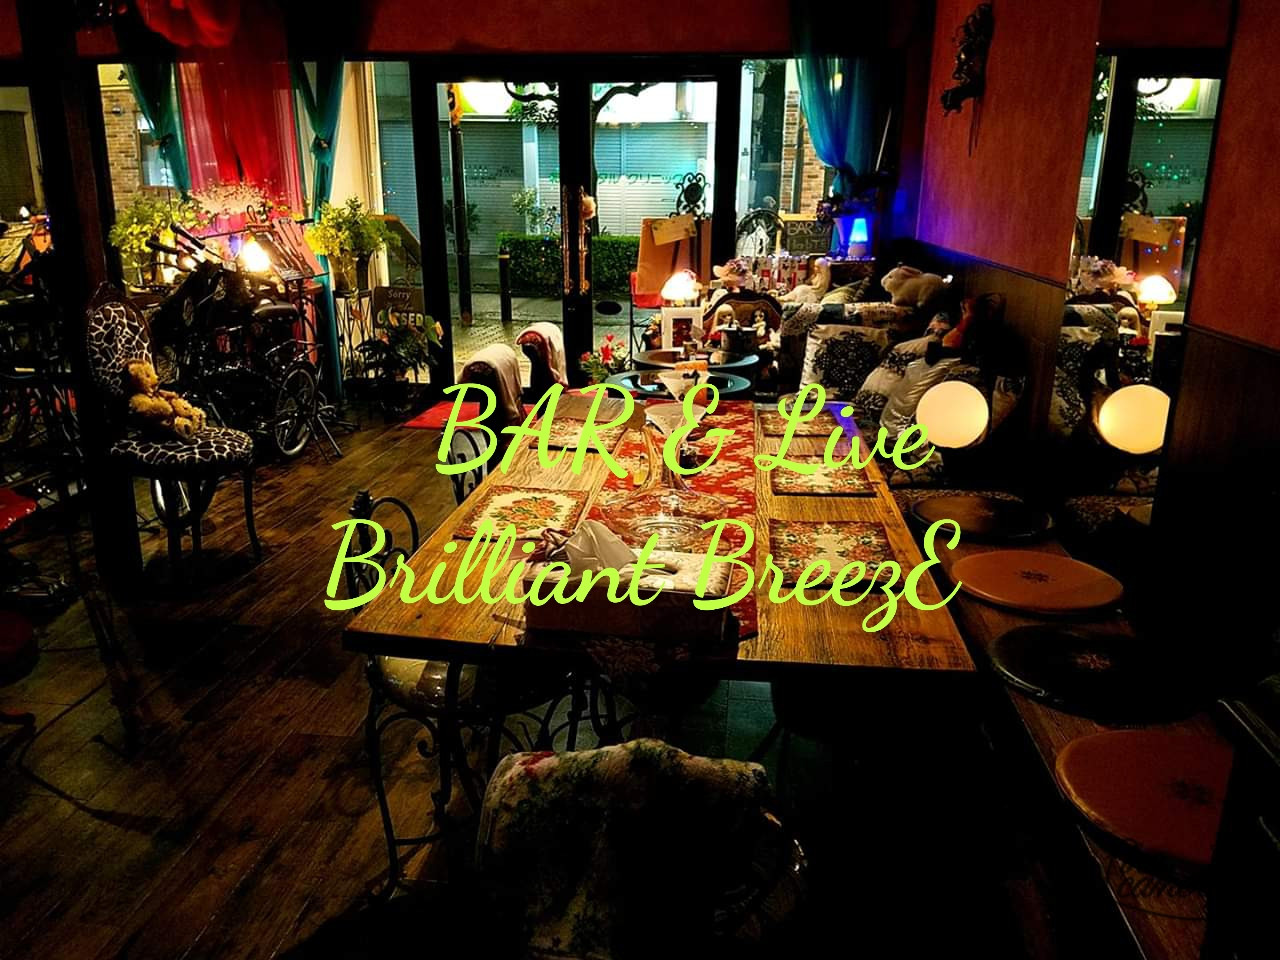 BAR&Live Brilliant BreezE